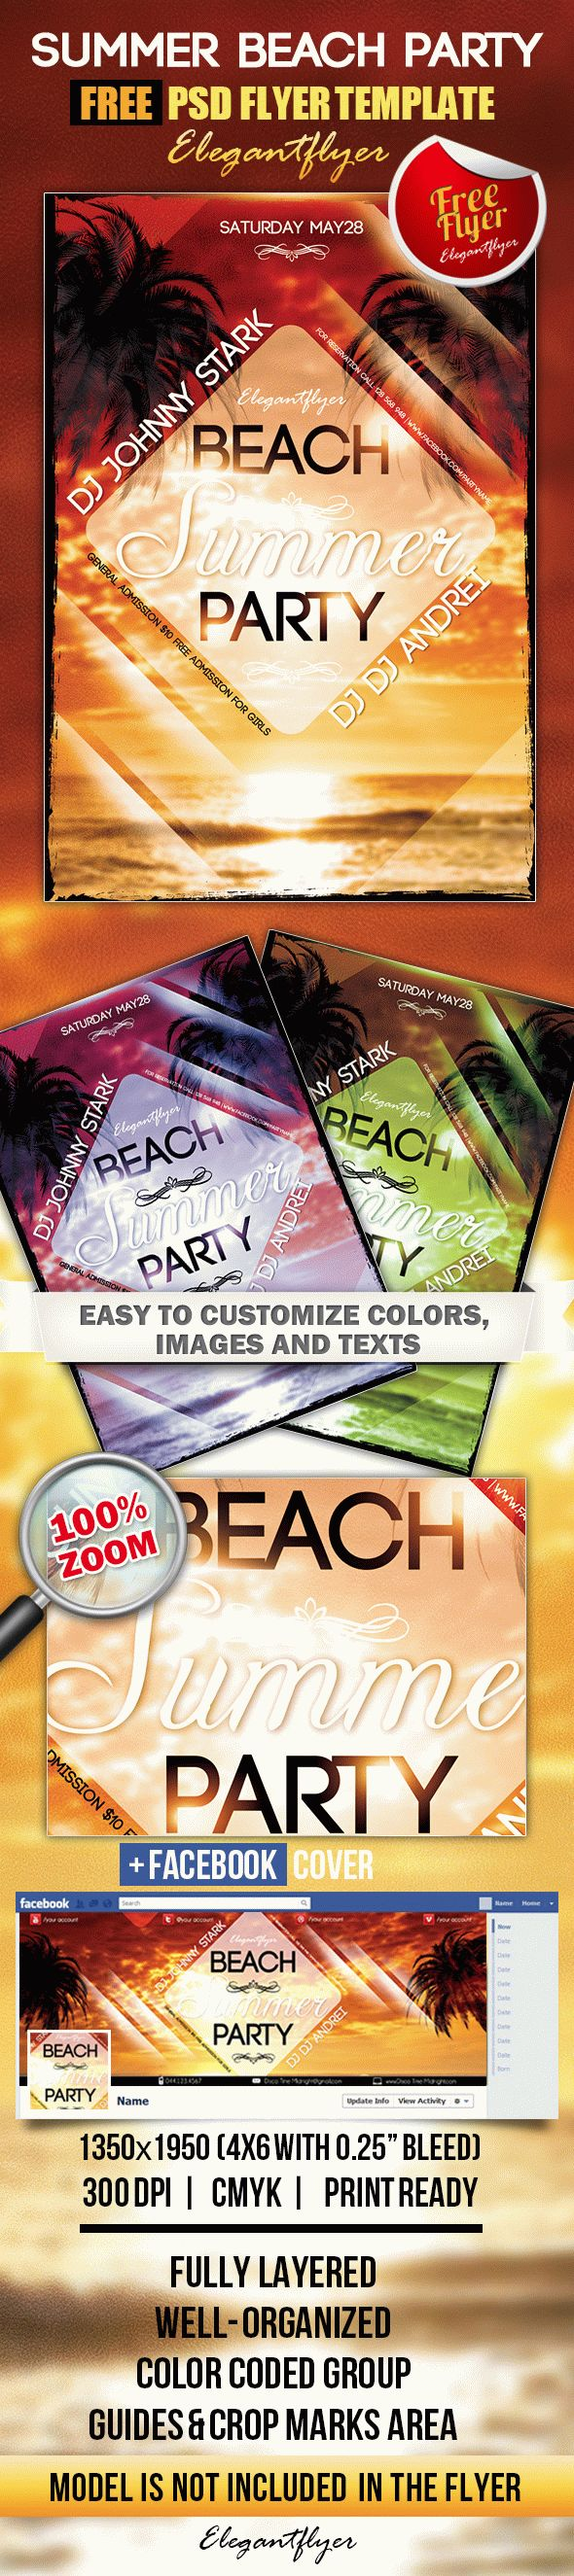 Summer Beach Party – Free Flyer PSD Template + Facebook Cover